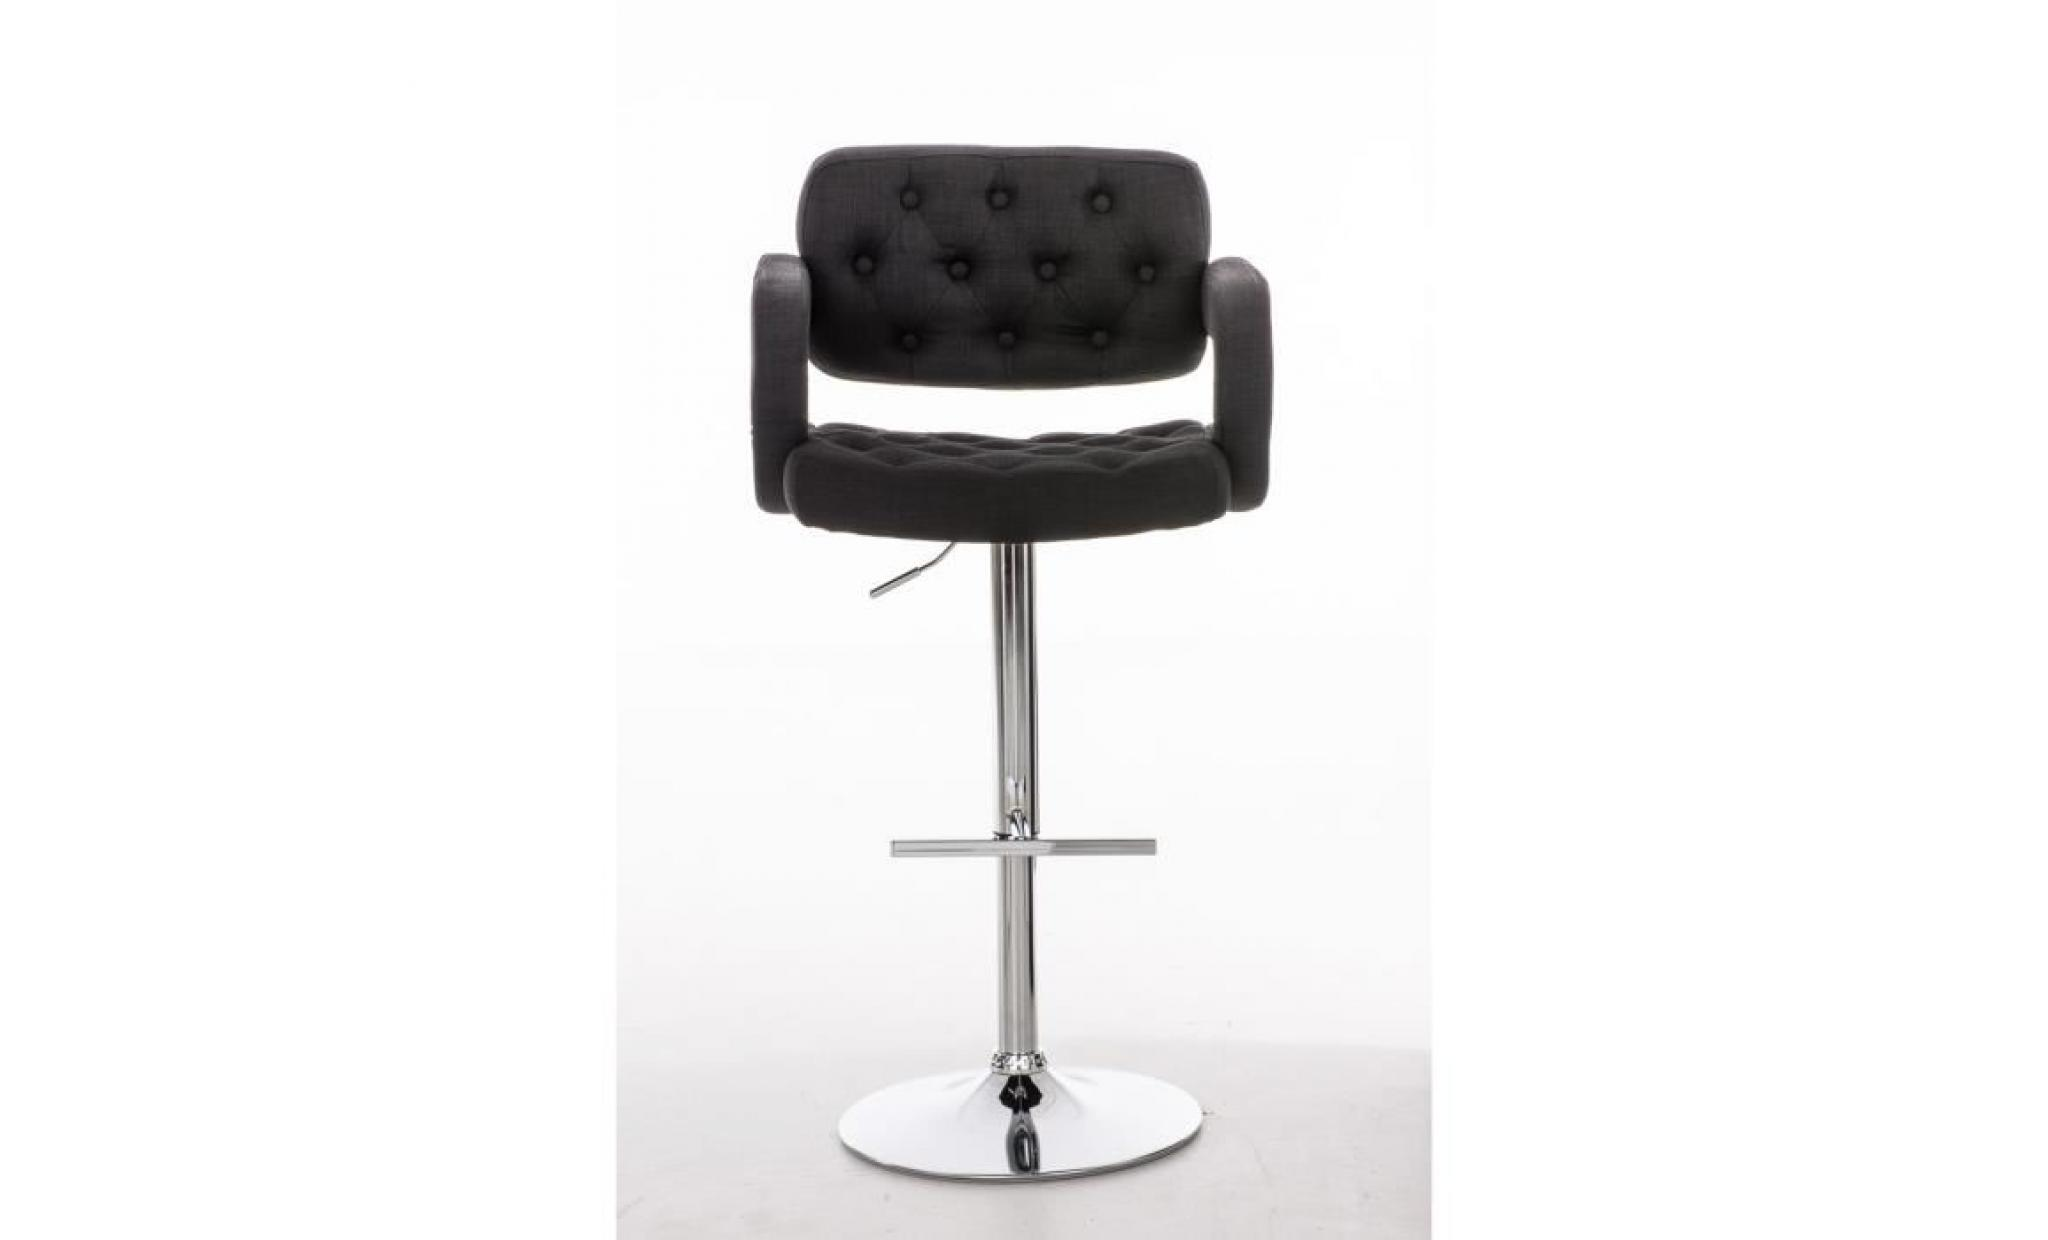 clp tabouret de bar de design dublin avec rev tement en tissu confortable hauteur assise. Black Bedroom Furniture Sets. Home Design Ideas